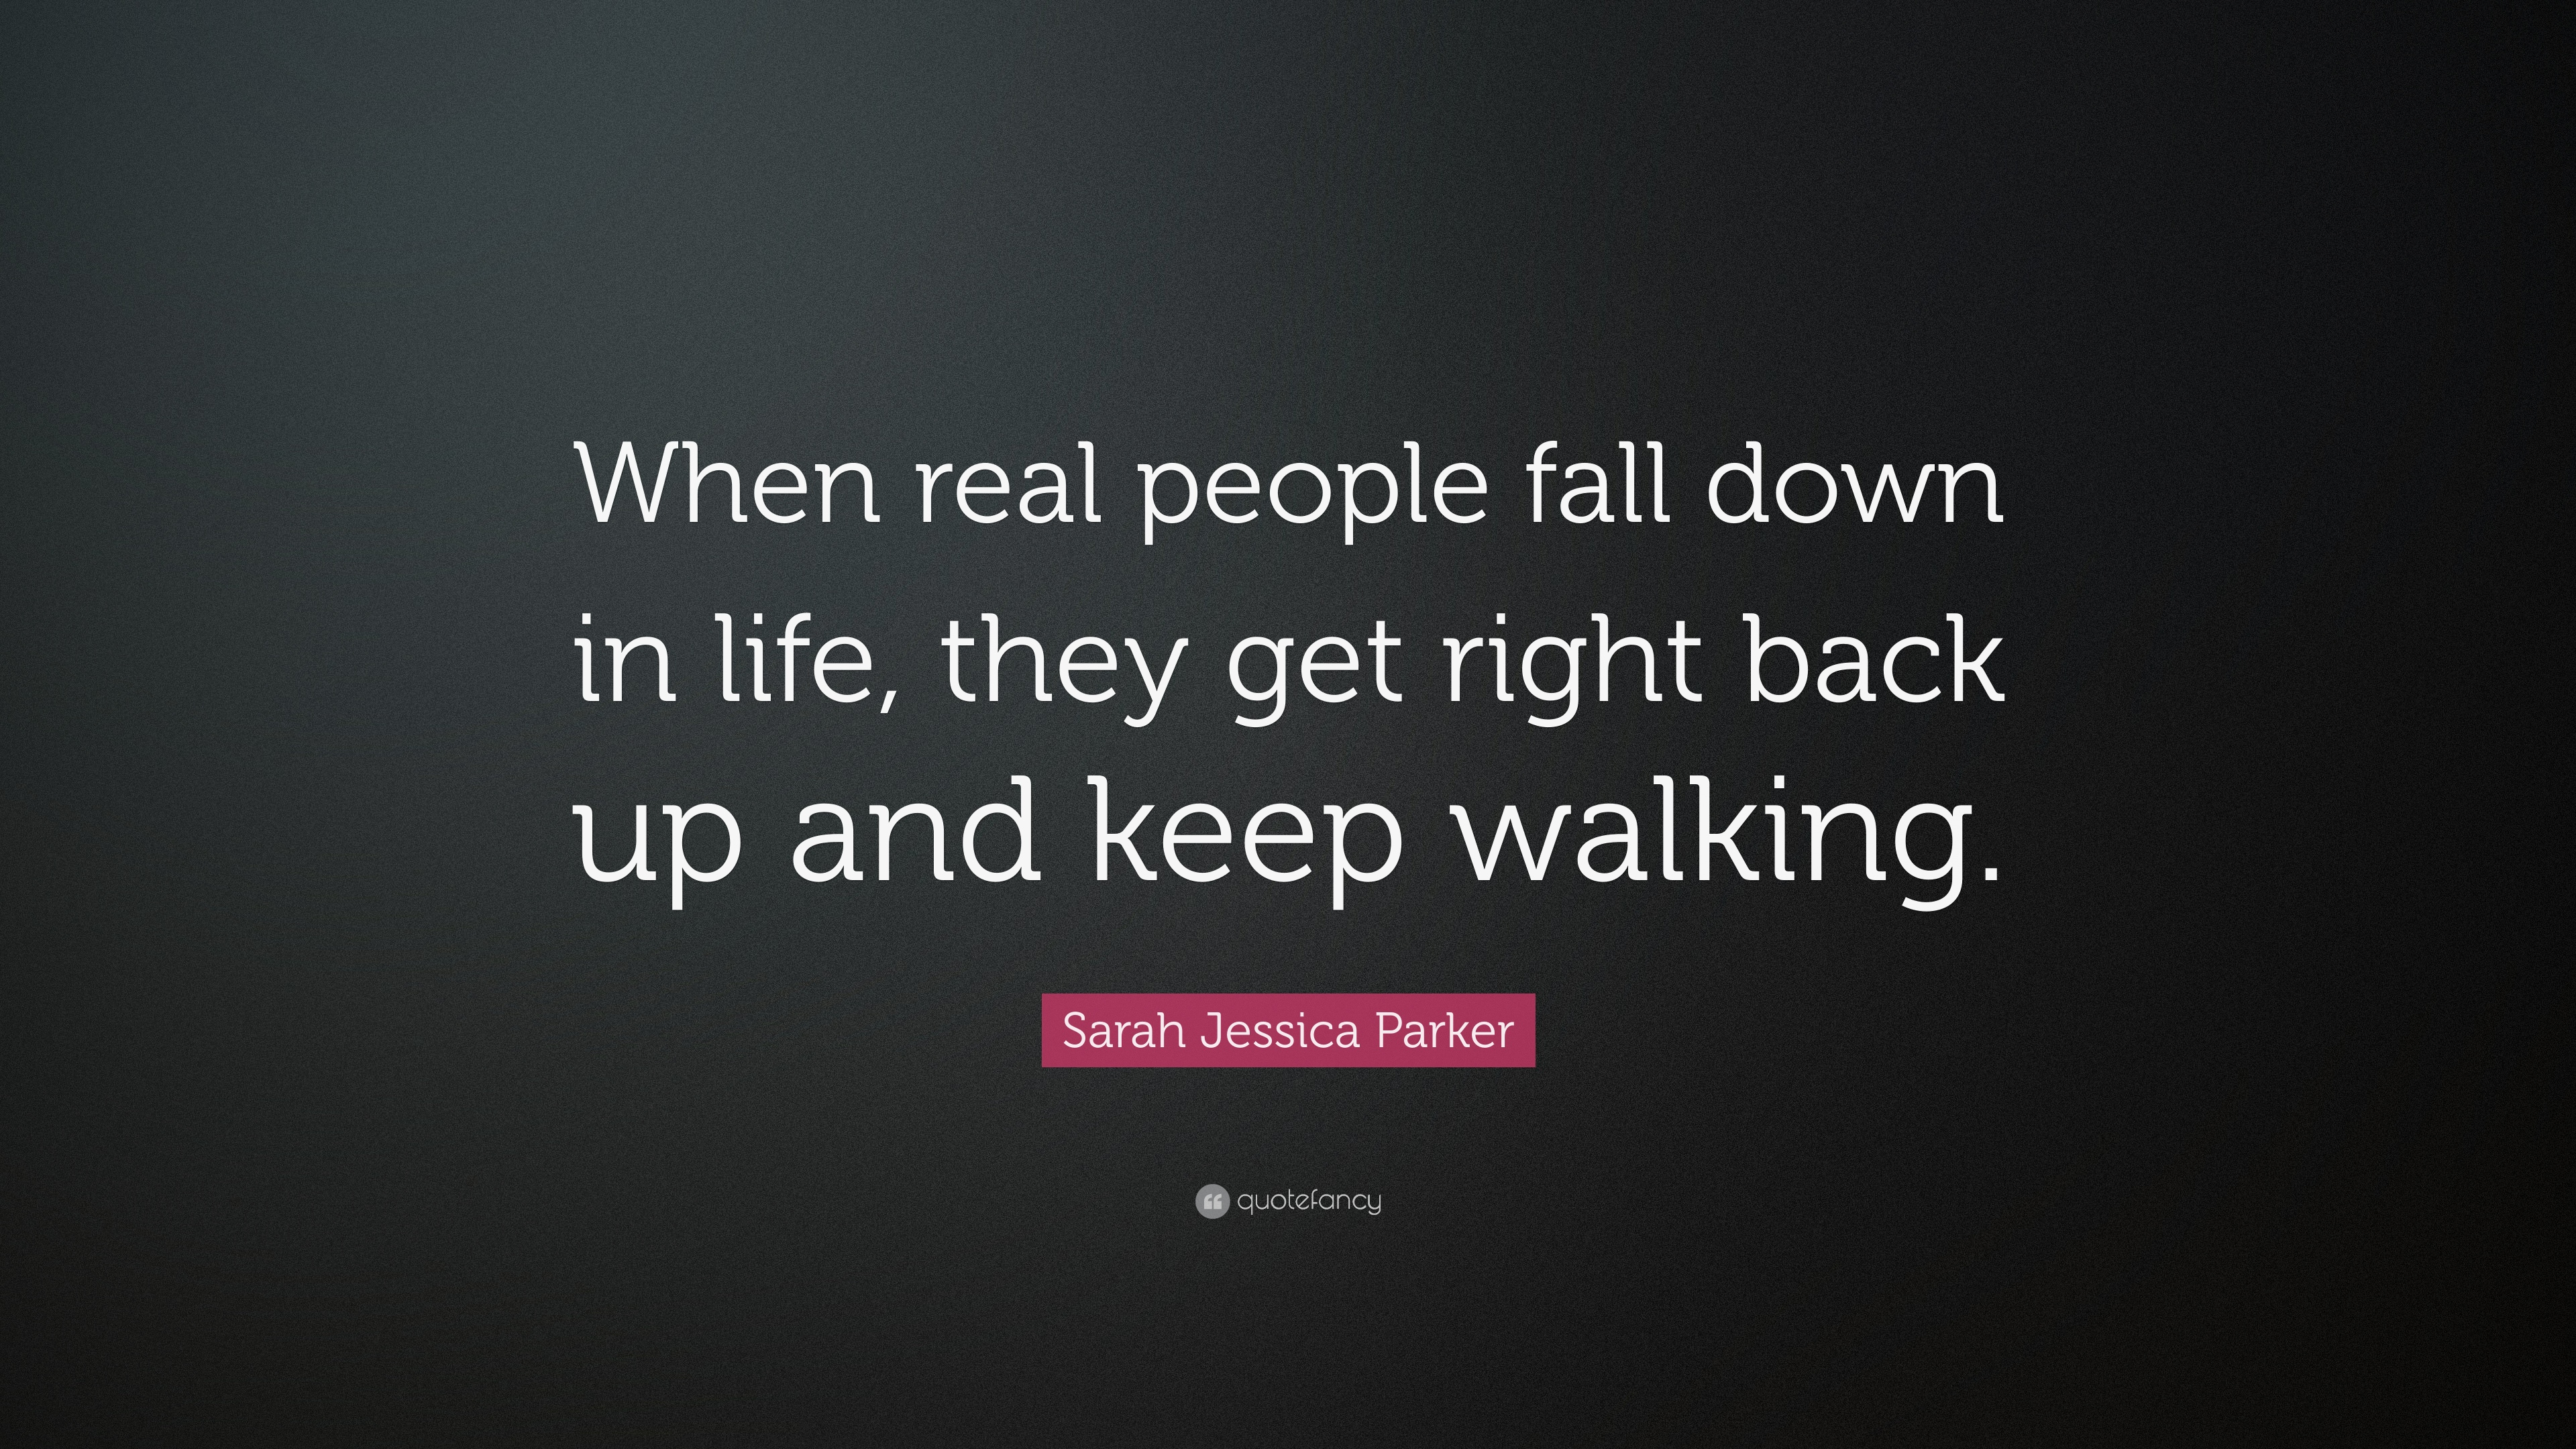 Sarah Jessica Parker Quote When Real People Fall Down In Life